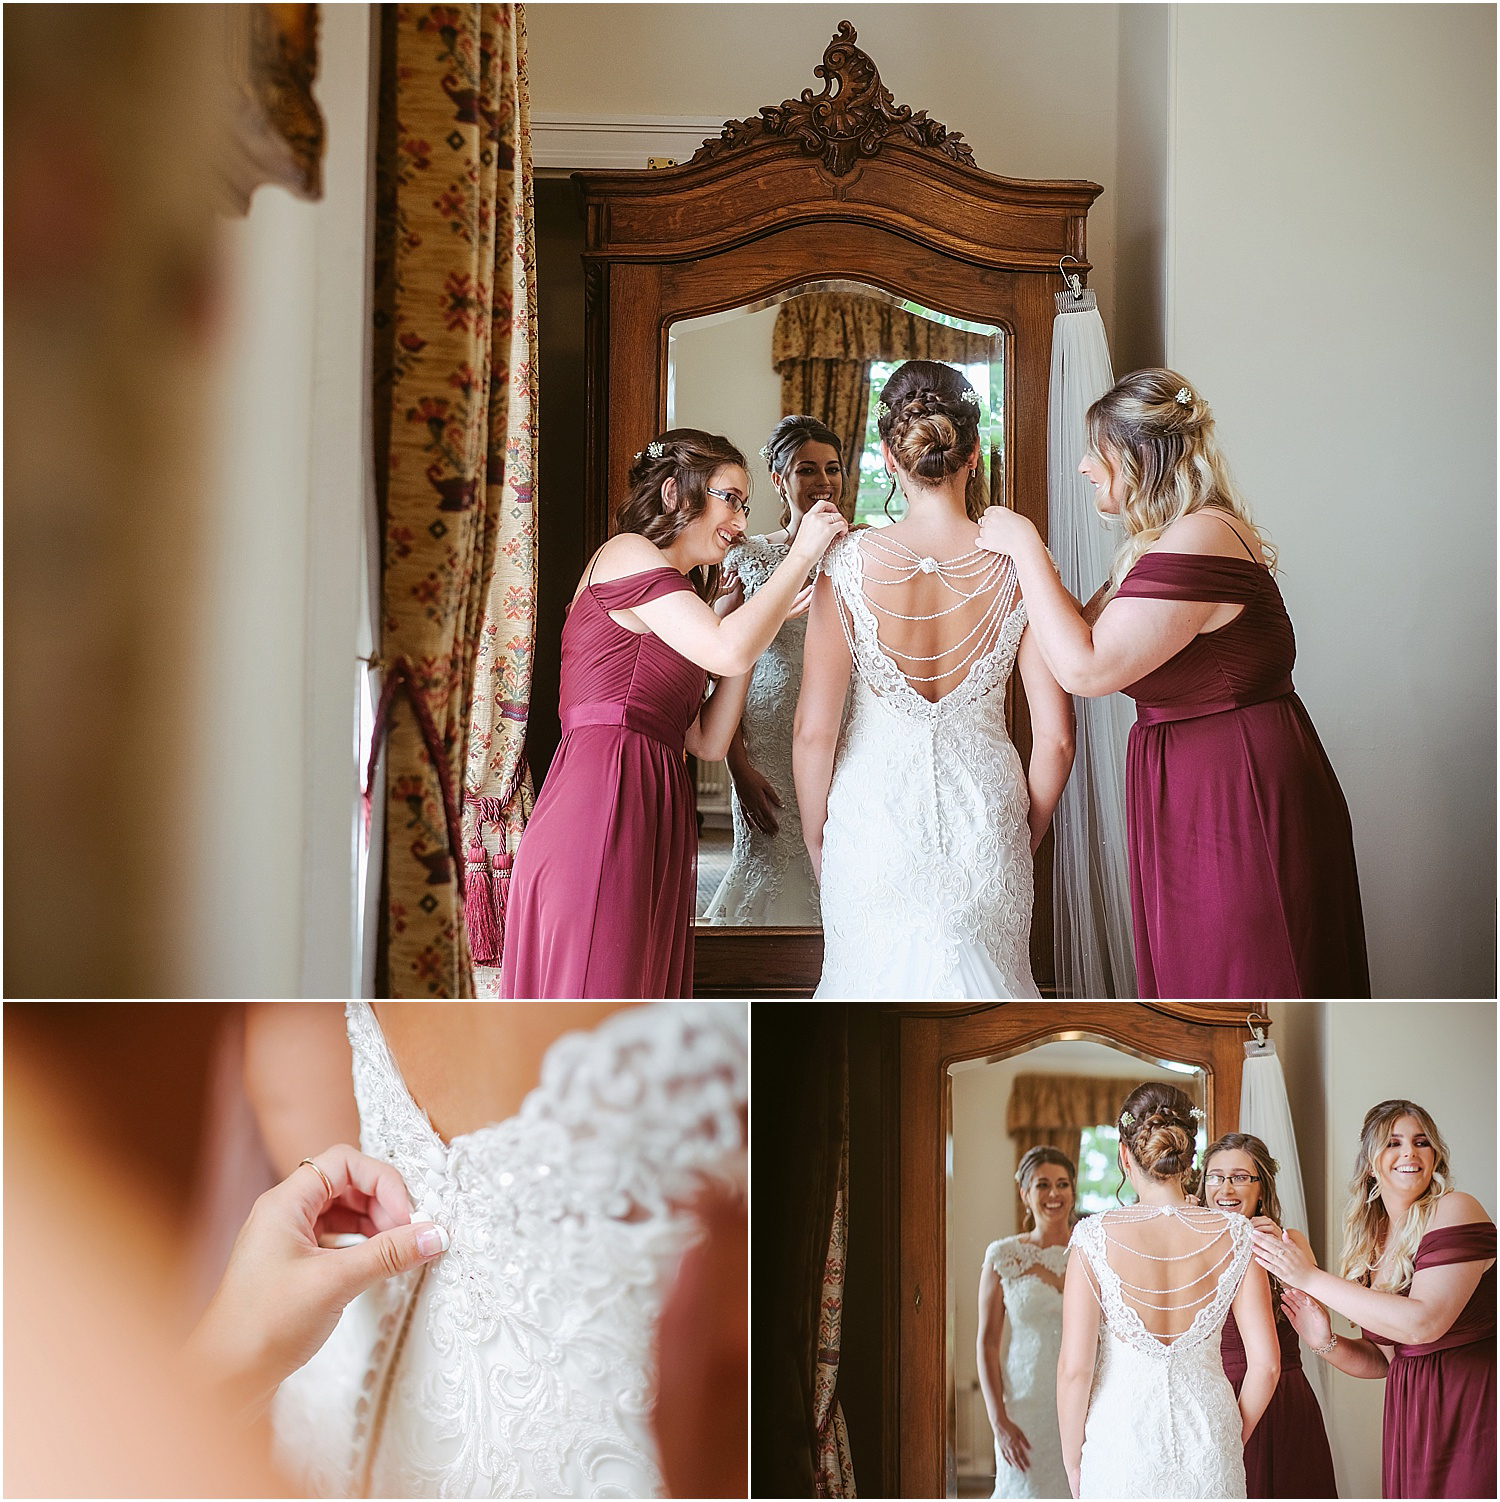 Wedding at Beamish Hall - wedding photography by www.2tonephotography.co.uk 122.jpg